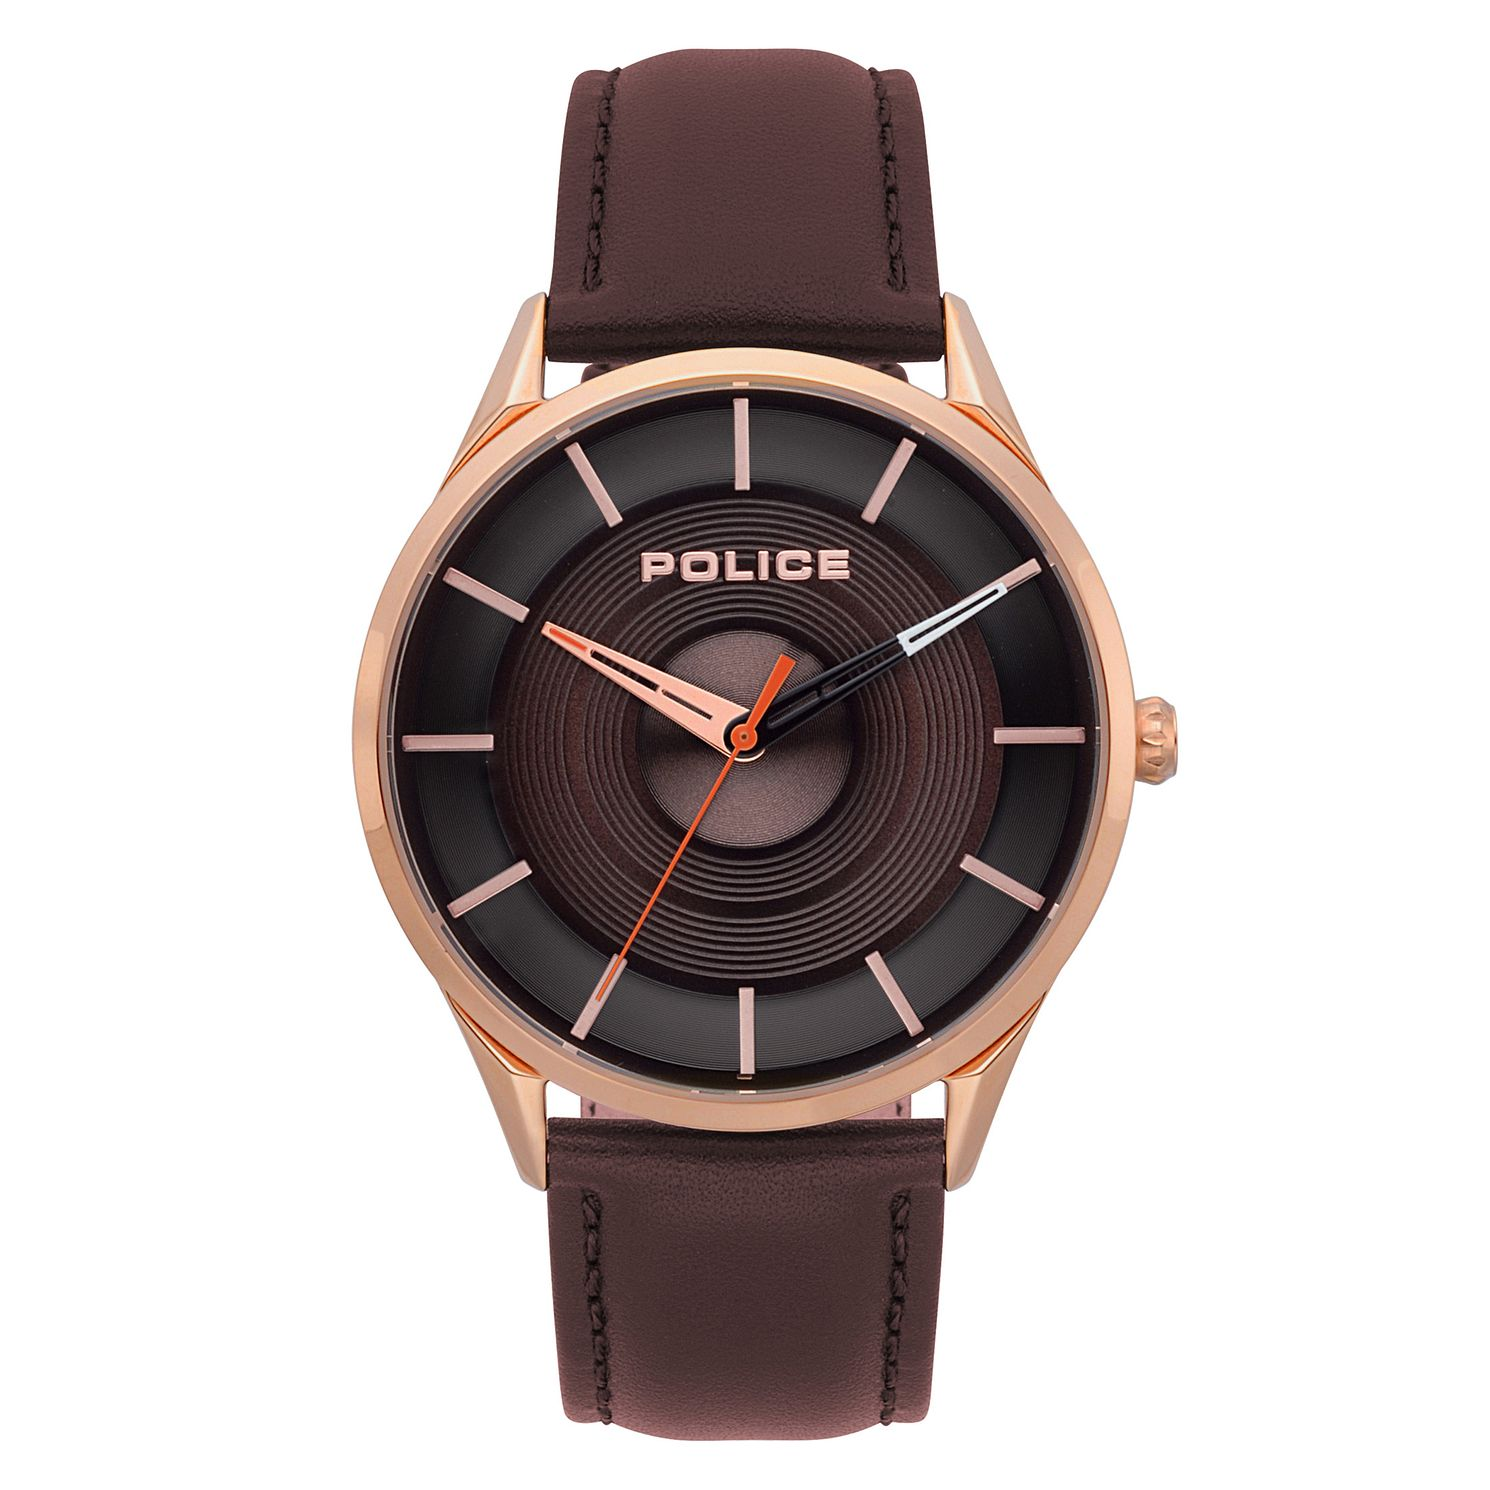 Police Men's Dark Brown Leather Strap Watch - Product number 4729757